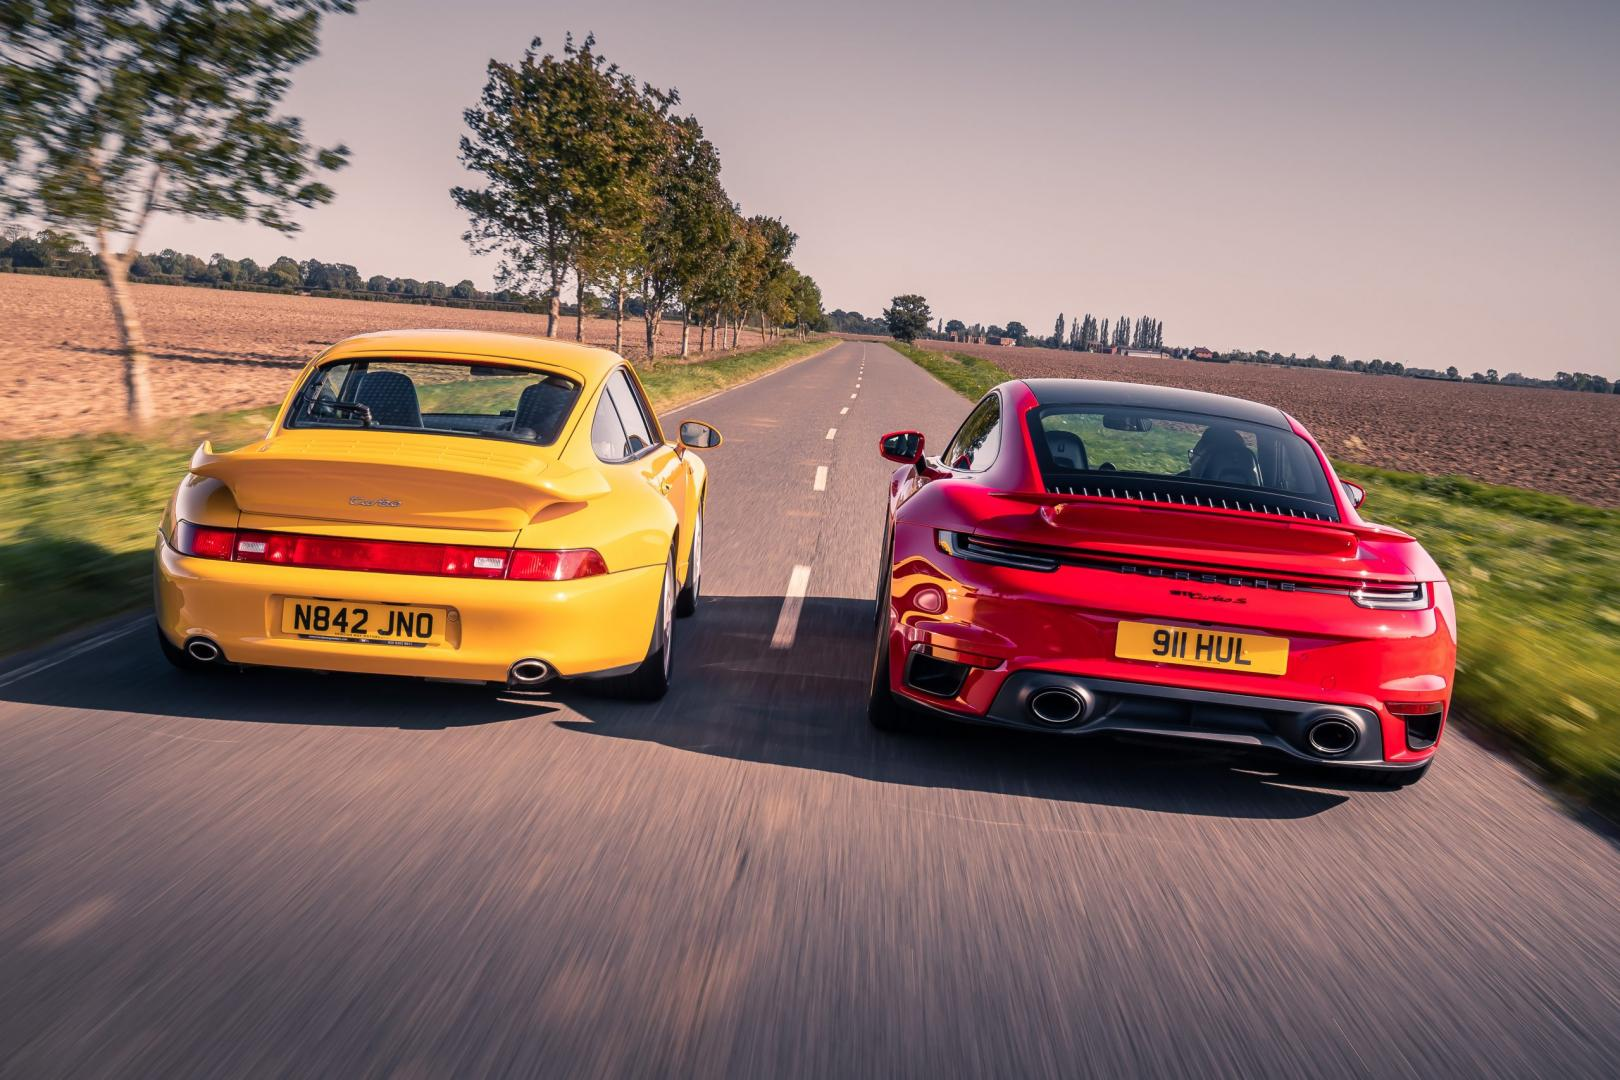 Porsche 911 Turbo S (992) (2020) (Rood) vs Porsche 911 Turbo 993 (1995) (geel)